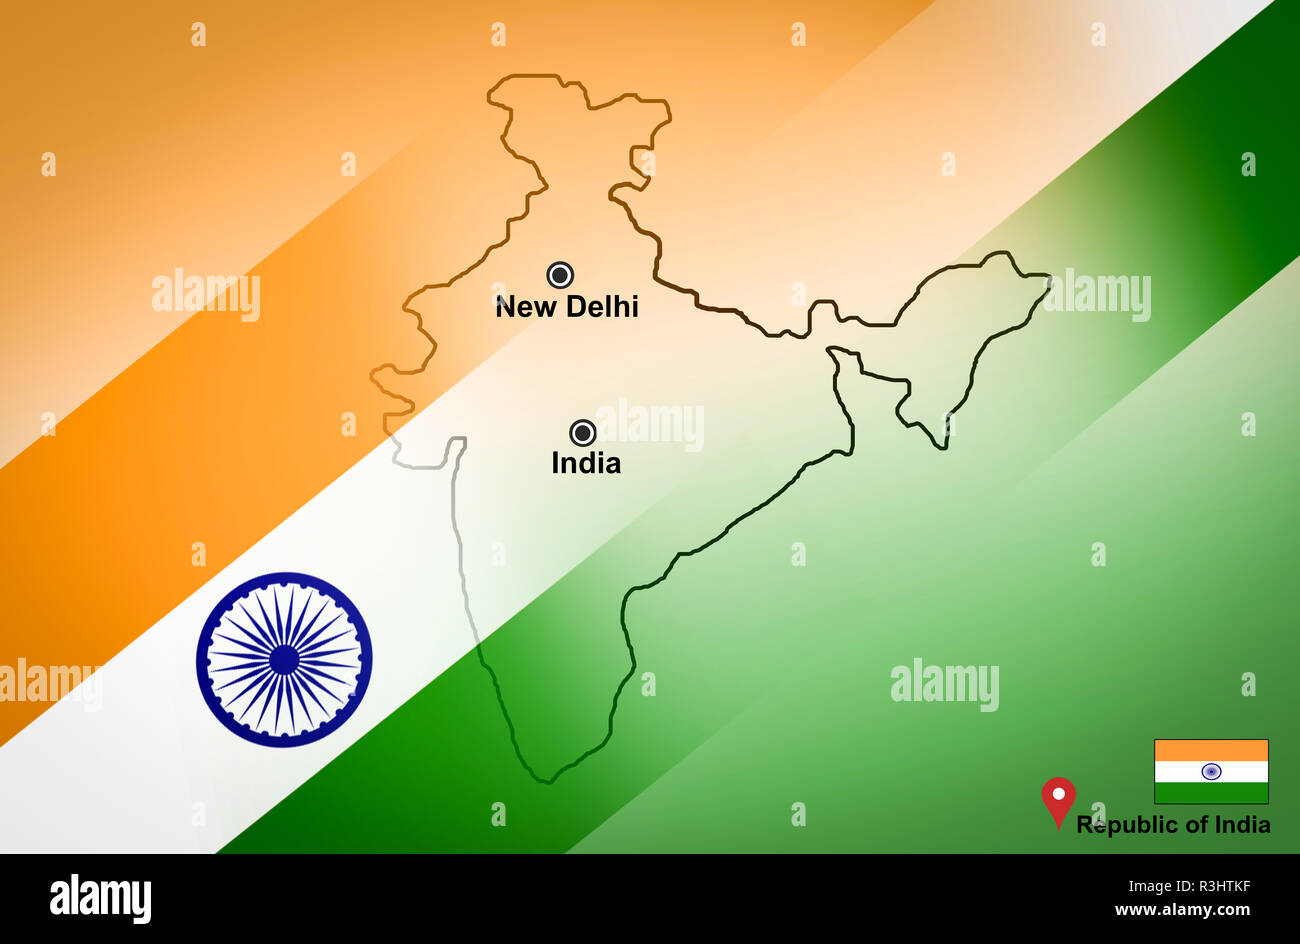 India map and New Delhi with location map pin and India flag ... on map of hardoi india, map of colombo india, map of kolhapur india, map of bihar state india, interactive map of india, map of kanpur india, map of guntur india, map of mumbai india, map of kollam india, map of pushkar india, map bangalore india, map of bay of bengal india, map of meghalaya india, map of varanasi india, map of pune india, map of istanbul turkey, map of rajkot india, map of gorakhpur india, map of princely states india, map of san pedro sula honduras,